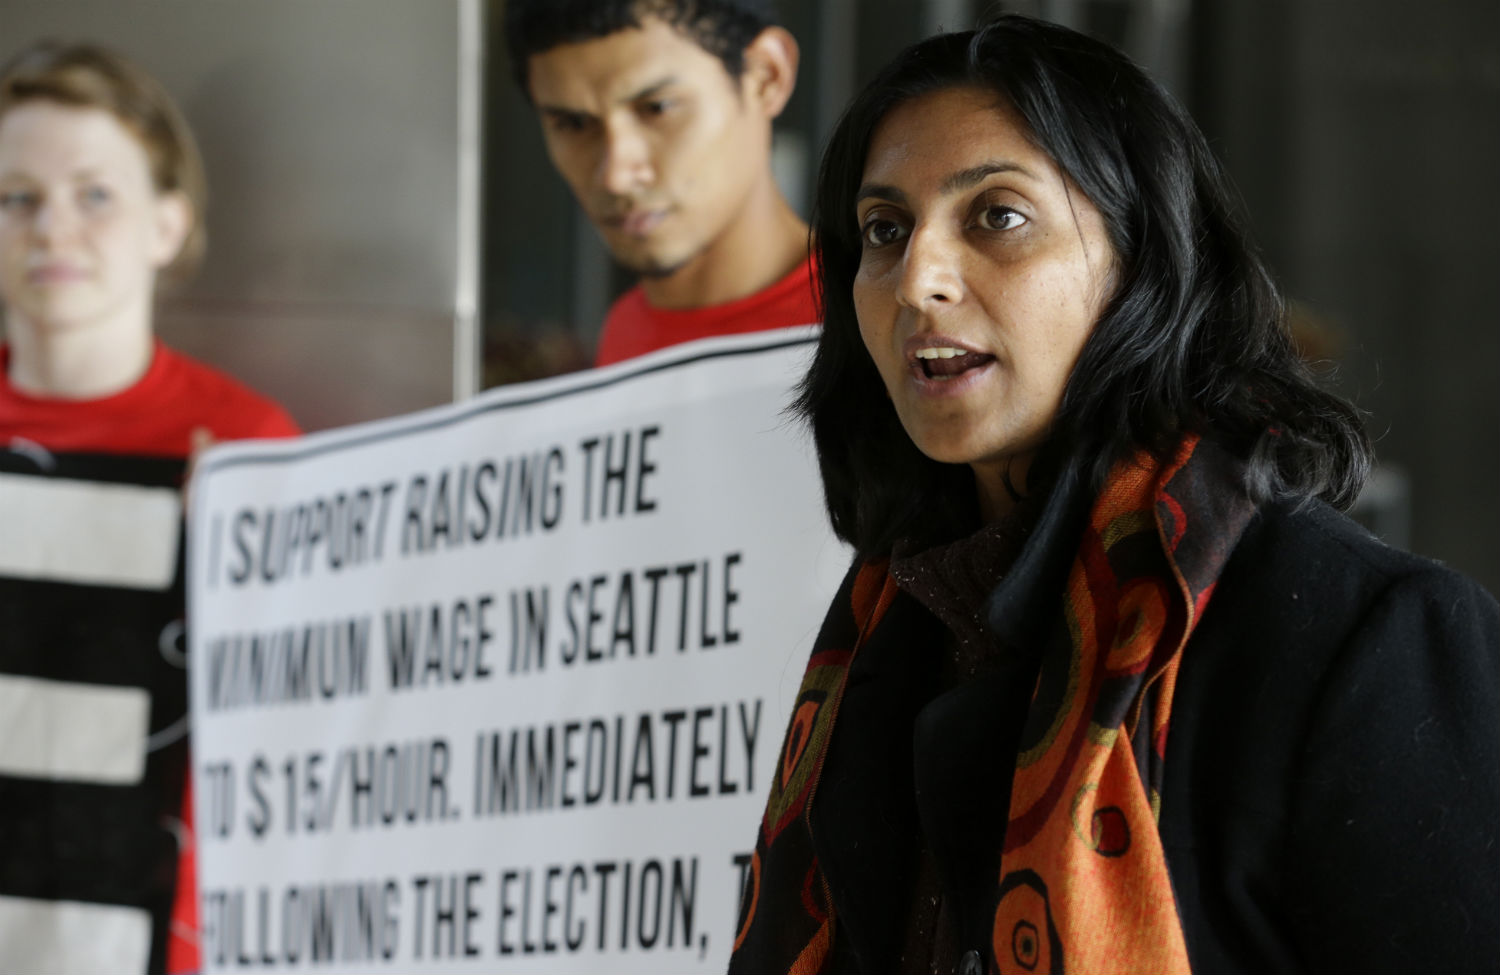 pKshama-Sawant-socialist-Seattle-city-council-candidatep